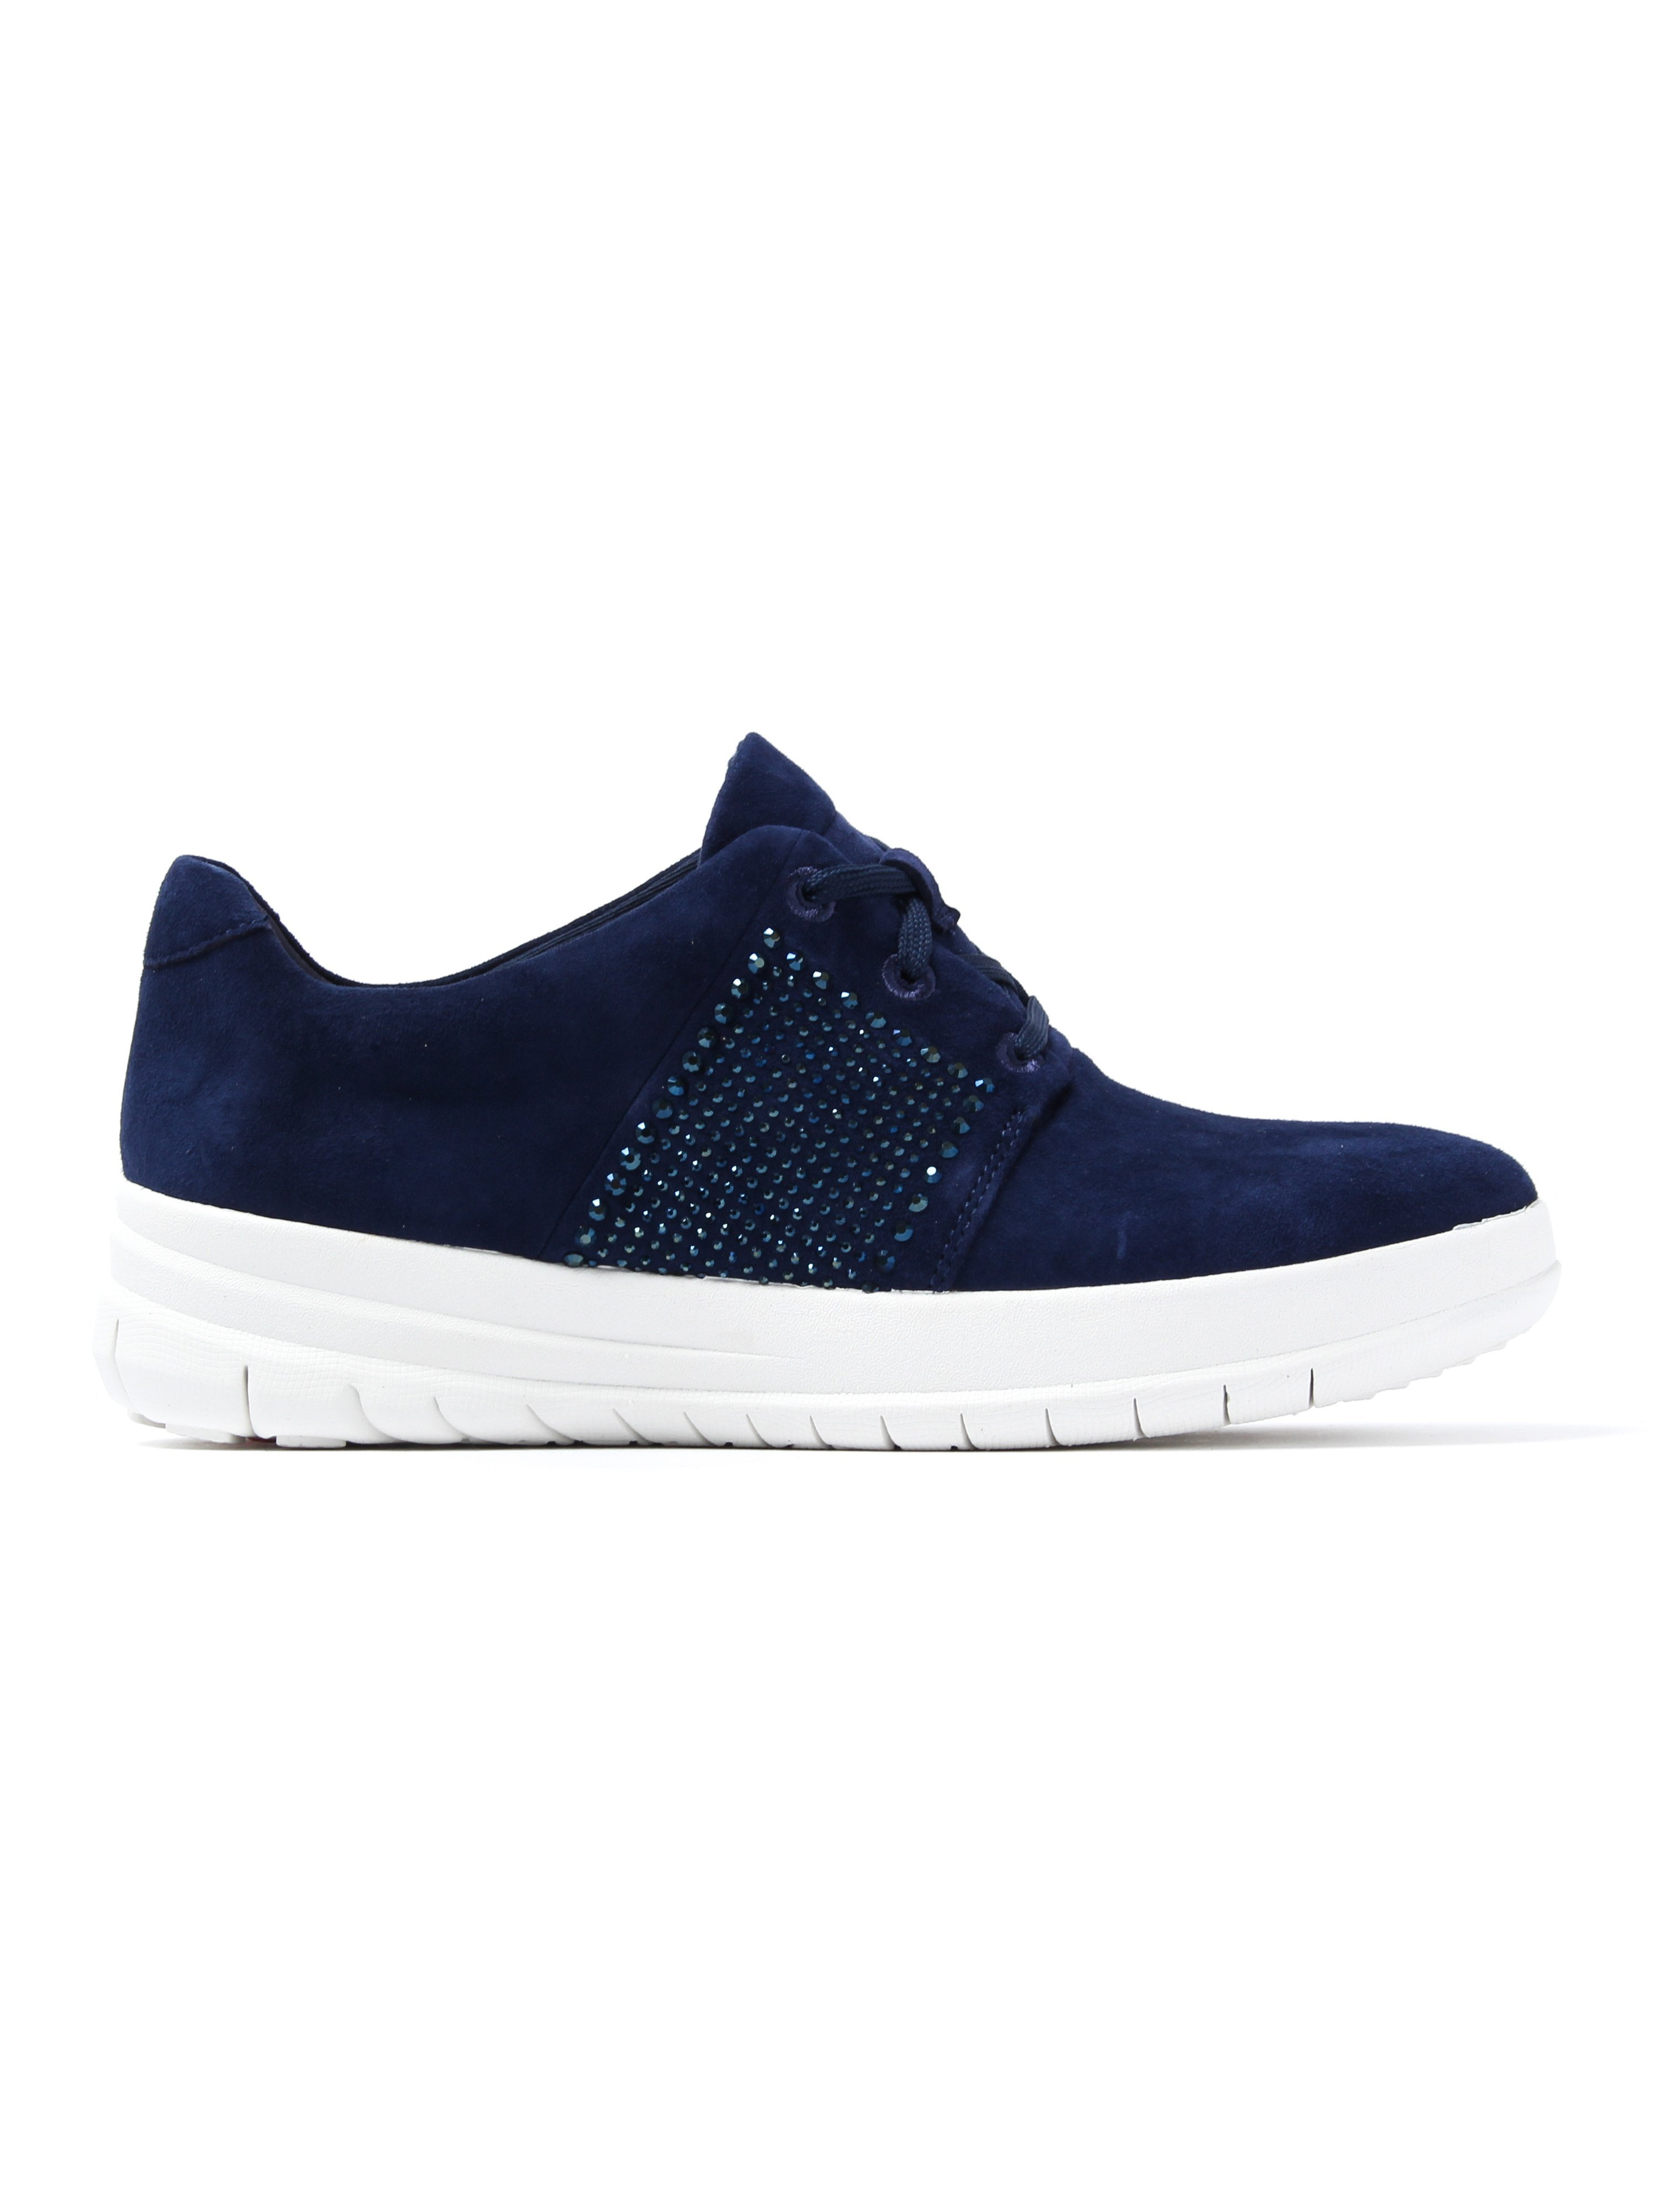 FitFlop Women's Sporty-Pop X-Crystal Trainers - Midnight Navy